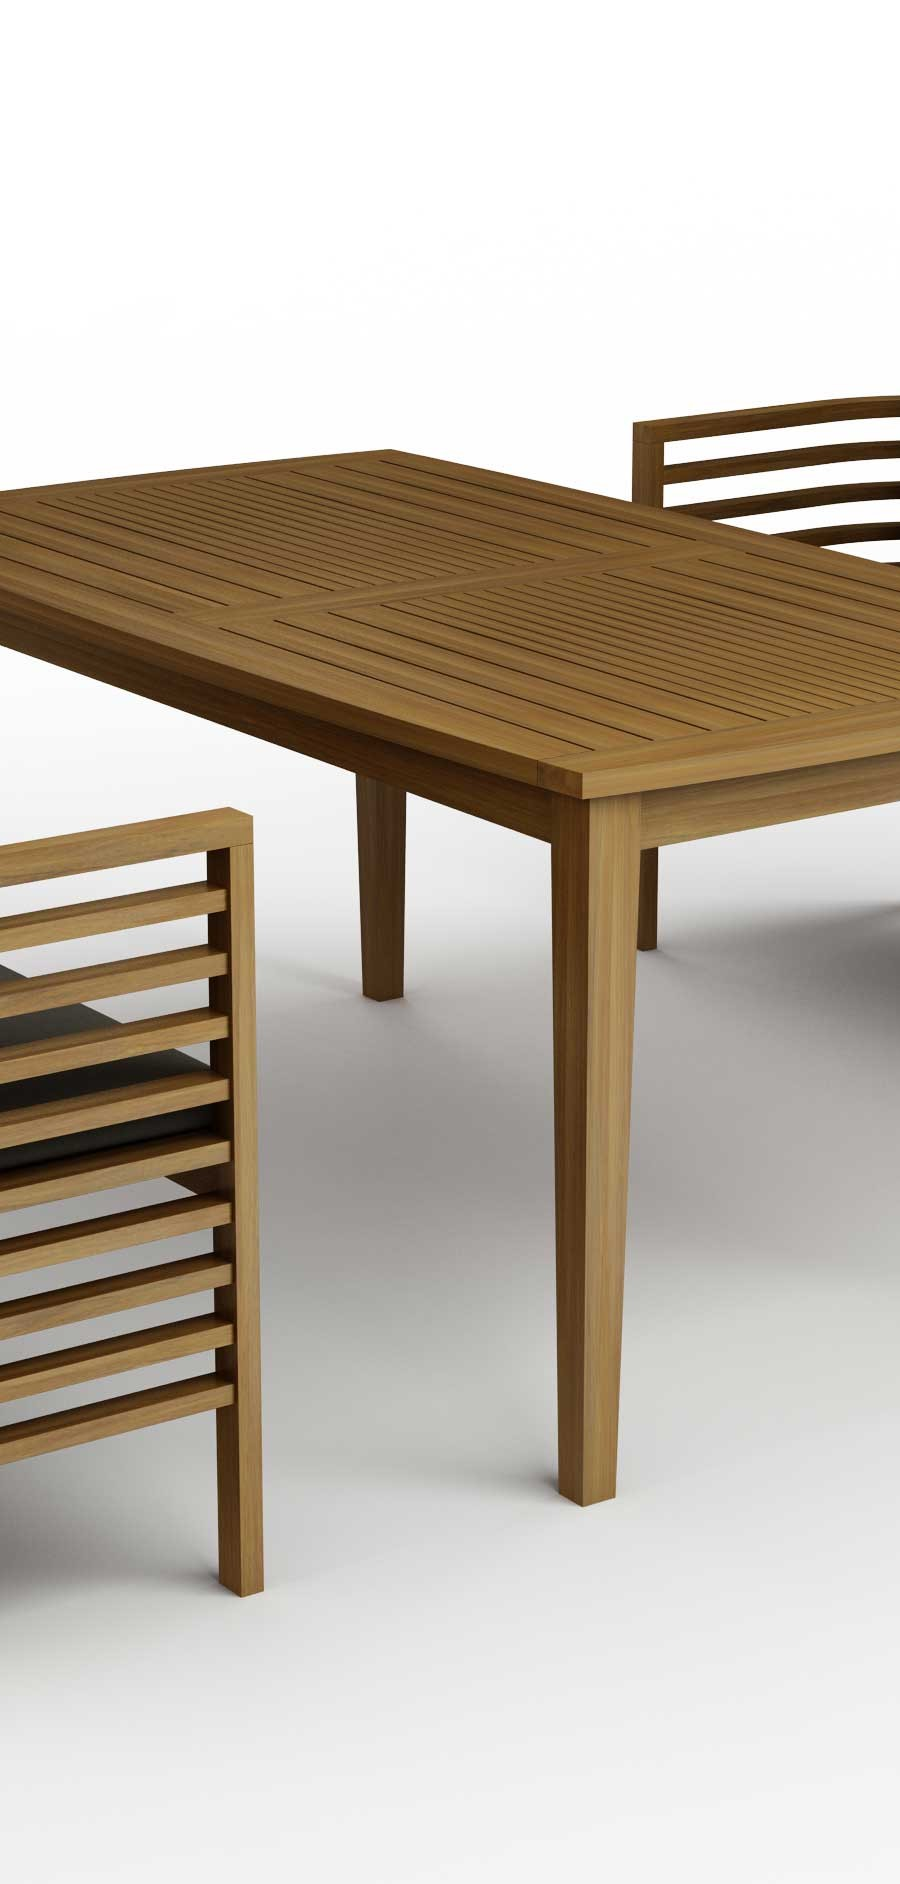 Remarkable Spirals Collection Teak Dining Table Benches Machost Co Dining Chair Design Ideas Machostcouk